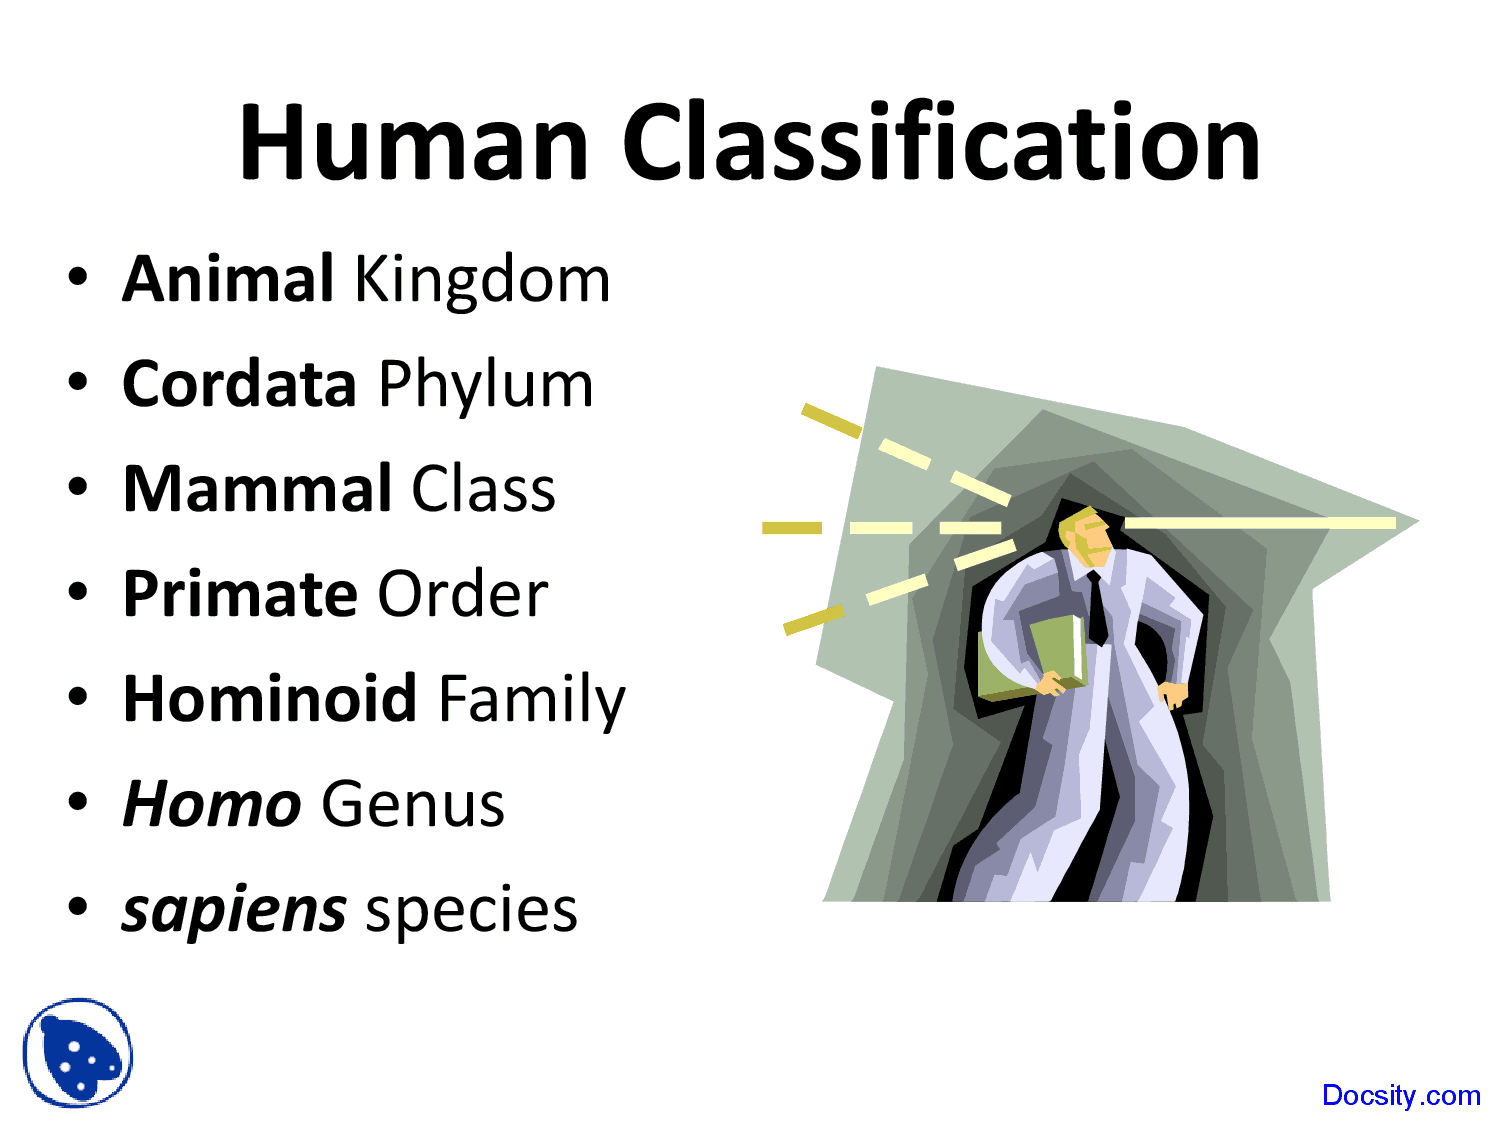 Human Classification - International Baccalaureate Biology - Lecture Slides  - Docsity